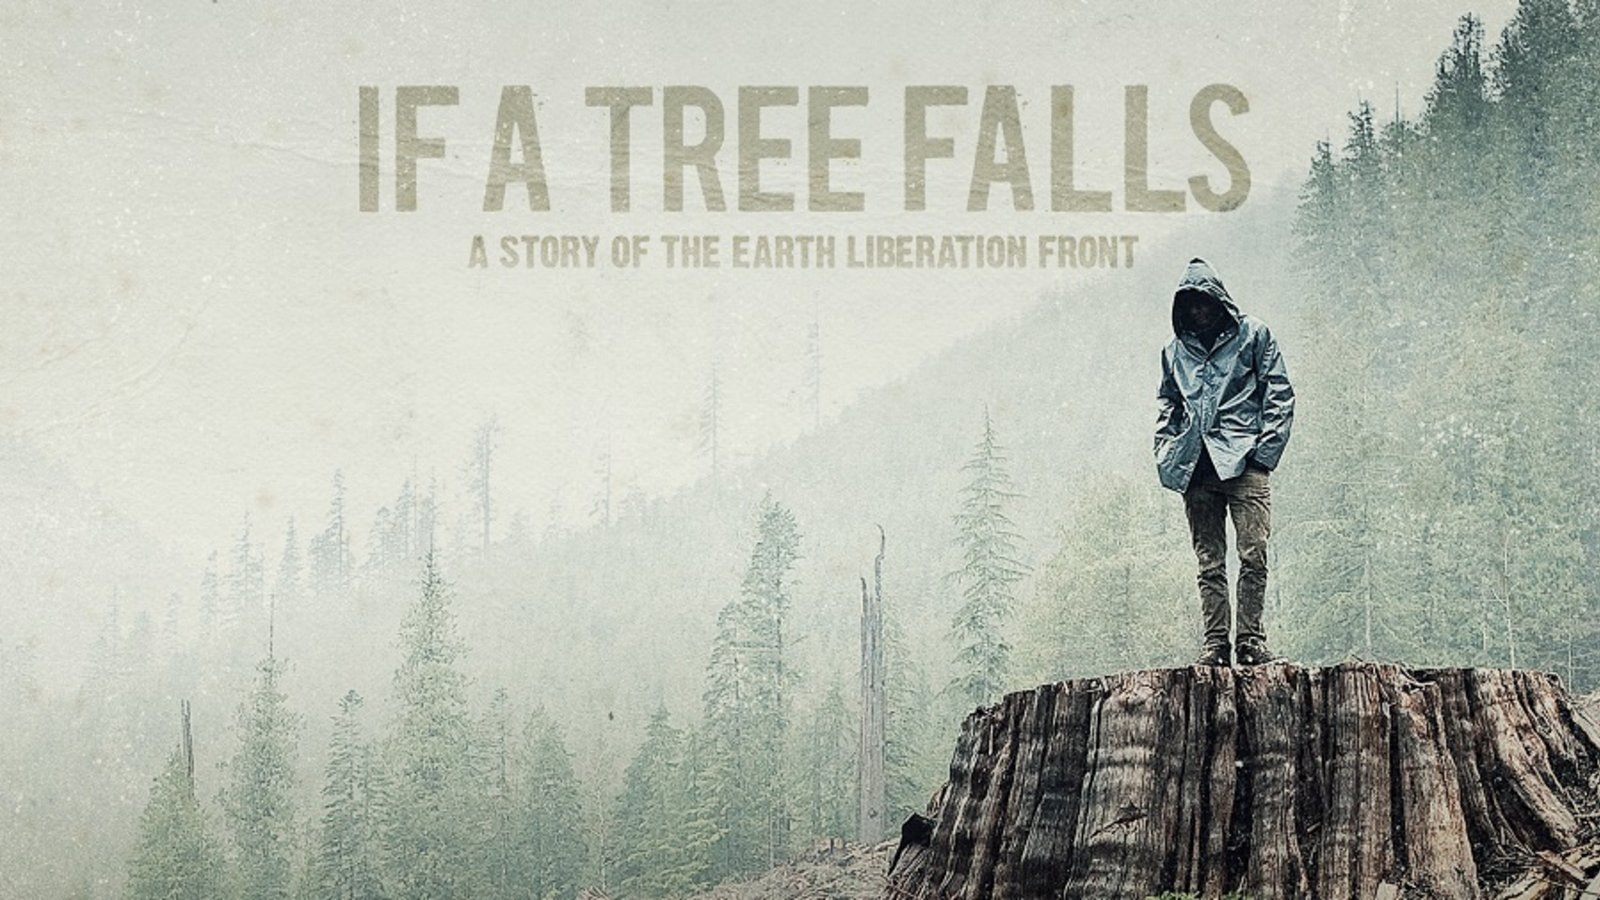 If A Tree Falls - A Story of the Earth Liberation Front